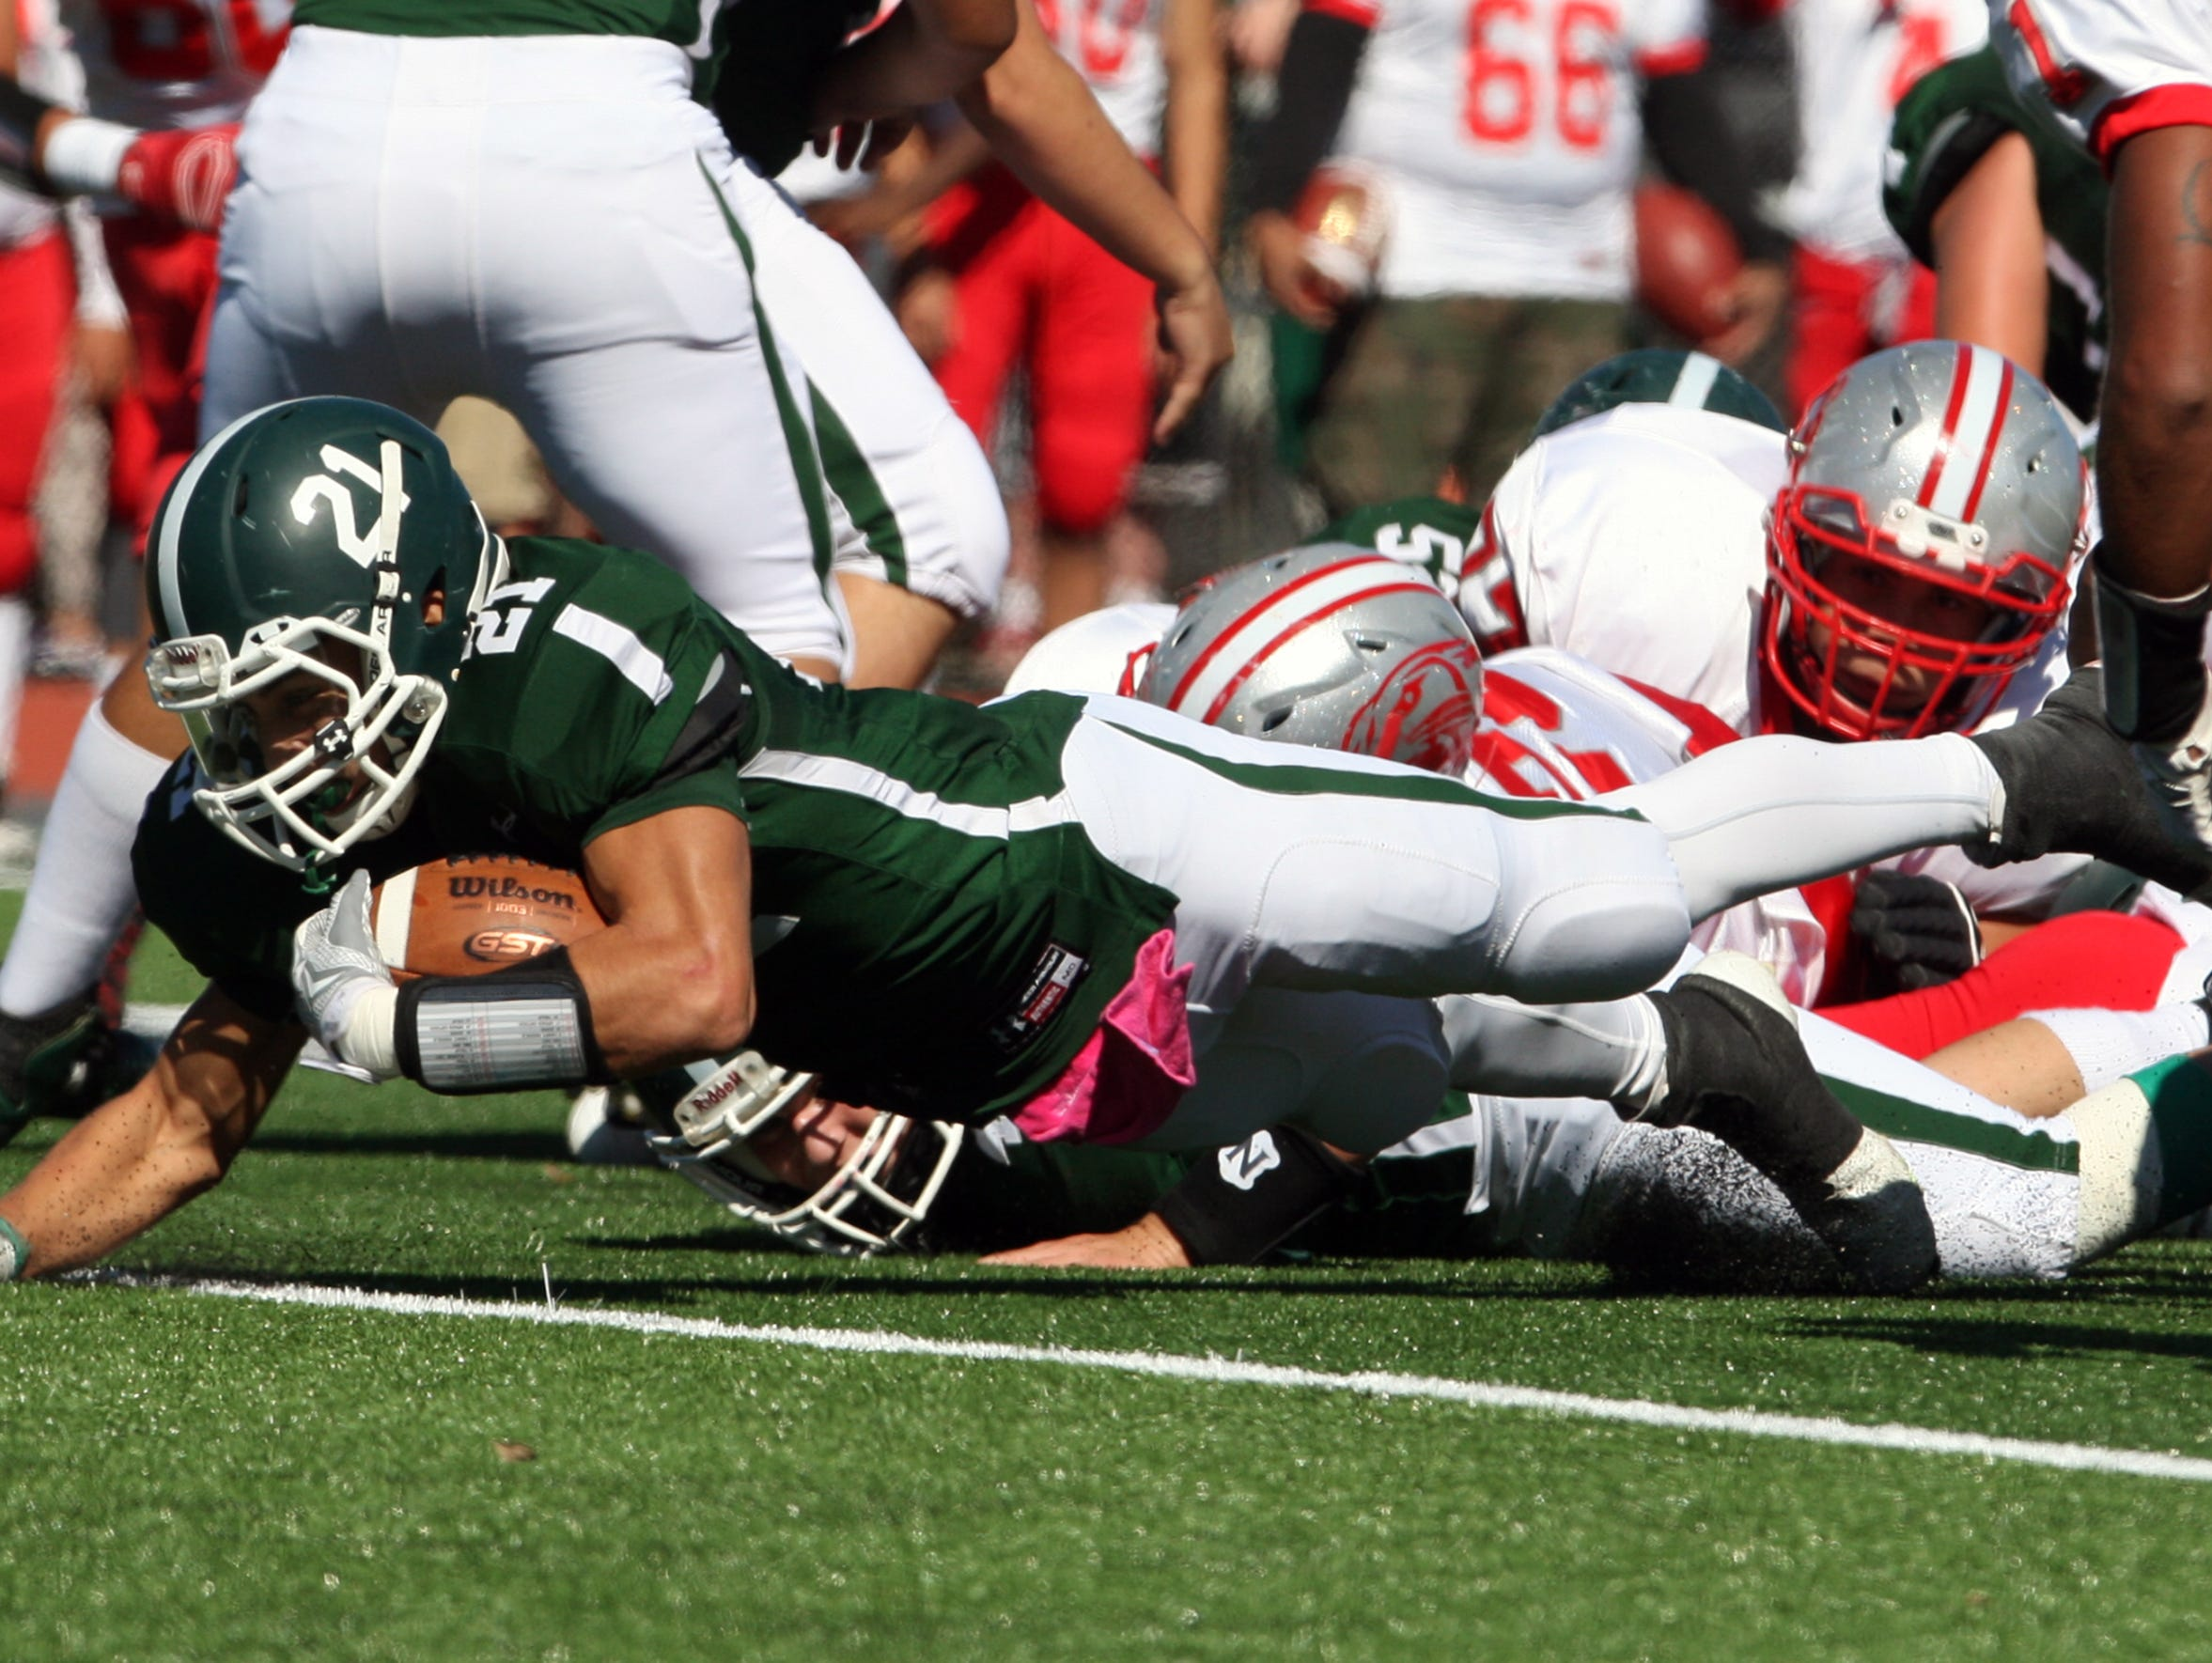 Action photos from the Perth Amboy High School at St. Joseph football game held at St. Joseph's new turf field in Metuhen on Saturday October 10, 2015. Here St. Joseph's # 21-Emmanuel Resto dives head fro first down yardage during the first half of play in Metuchen.